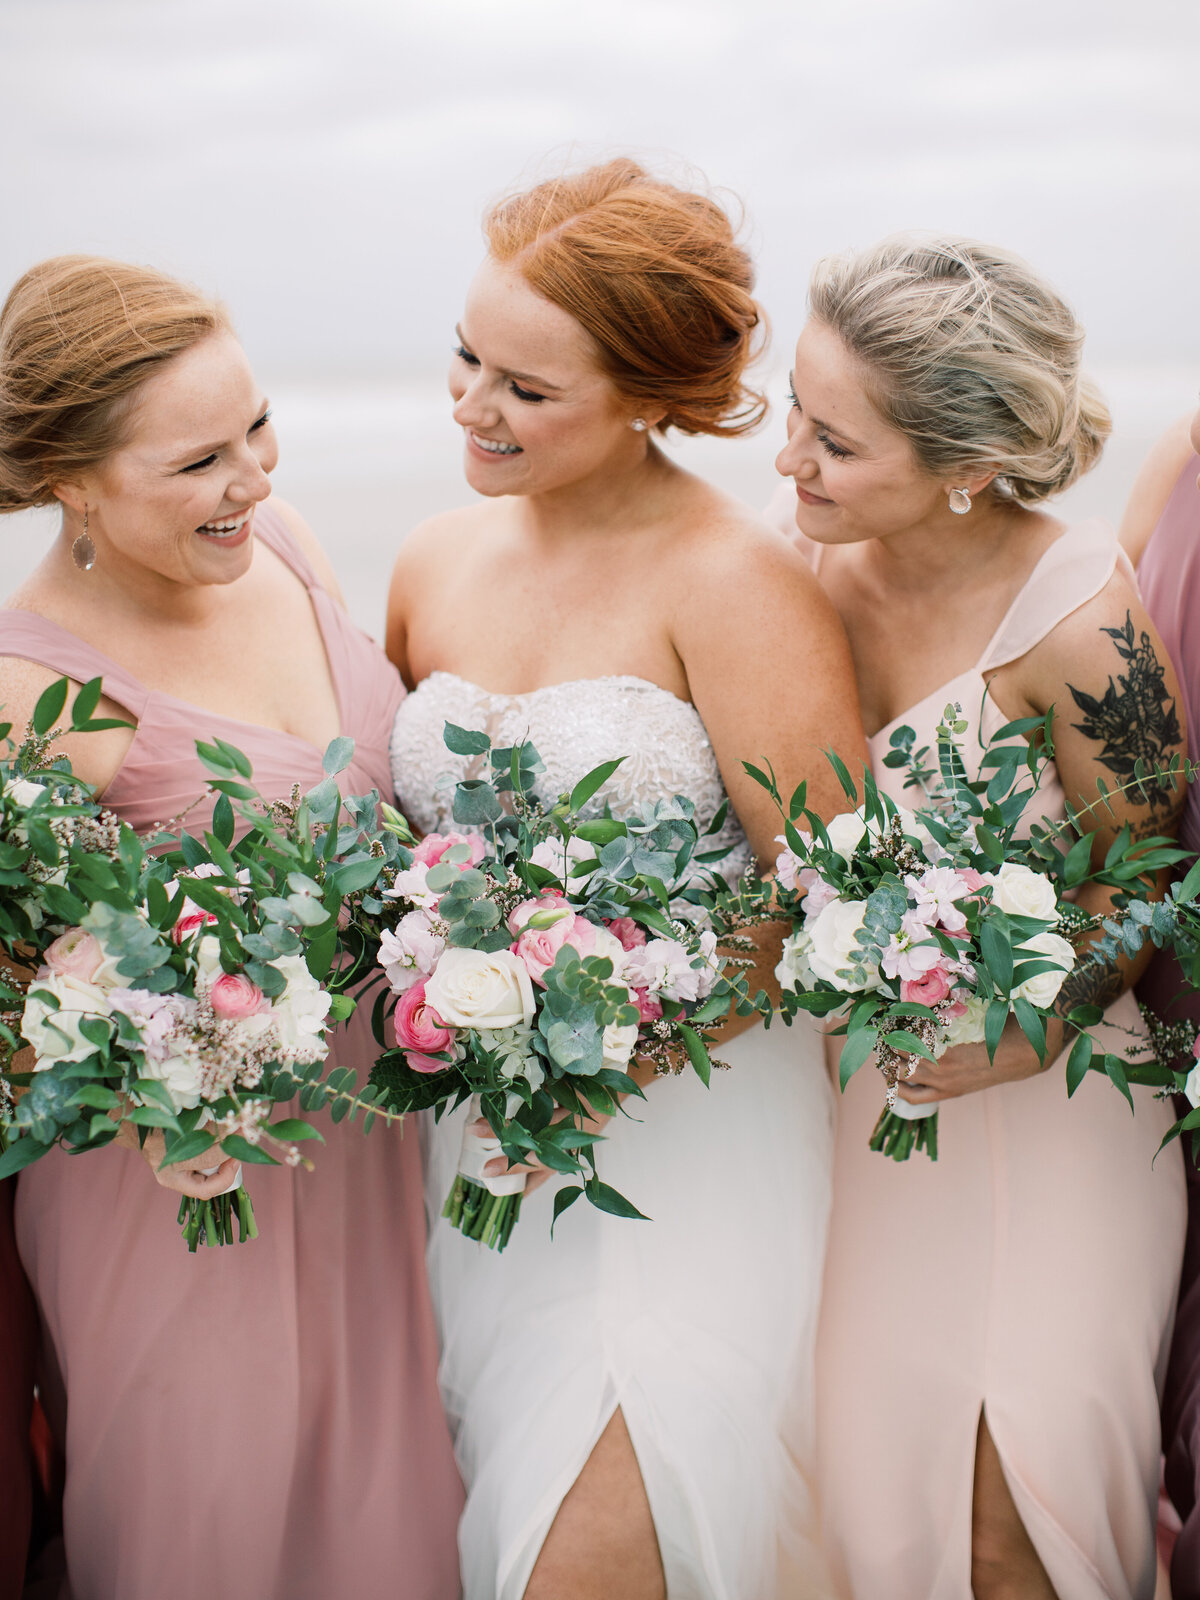 Charleston Wedding Photographer | Beaufort Wedding Photographer | Savannah Wedding Photographer | Santa Barbara Wedding Photographer | San Luis Obispo Wedding Photographer-23